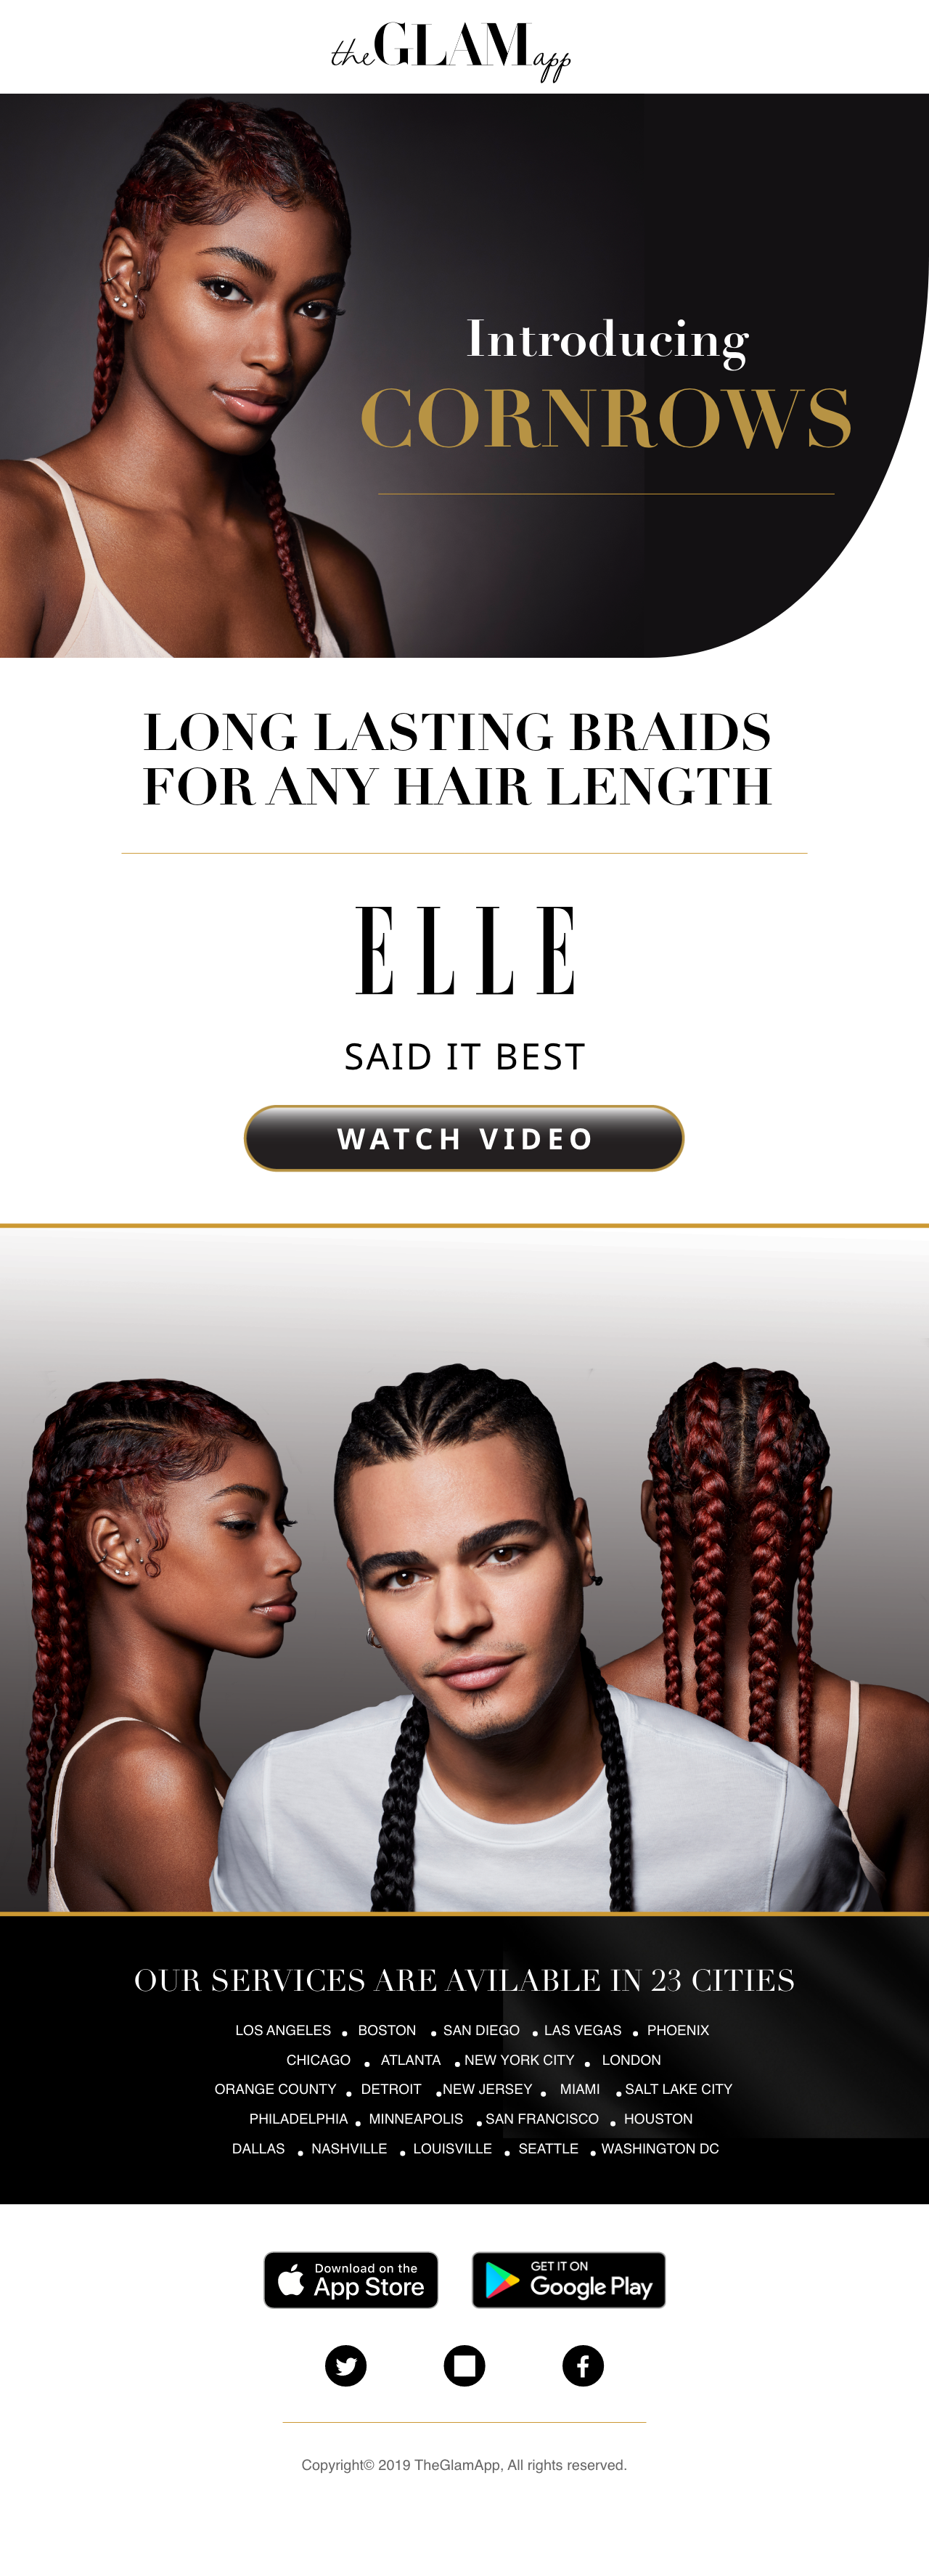 The Glam App | Cornrows